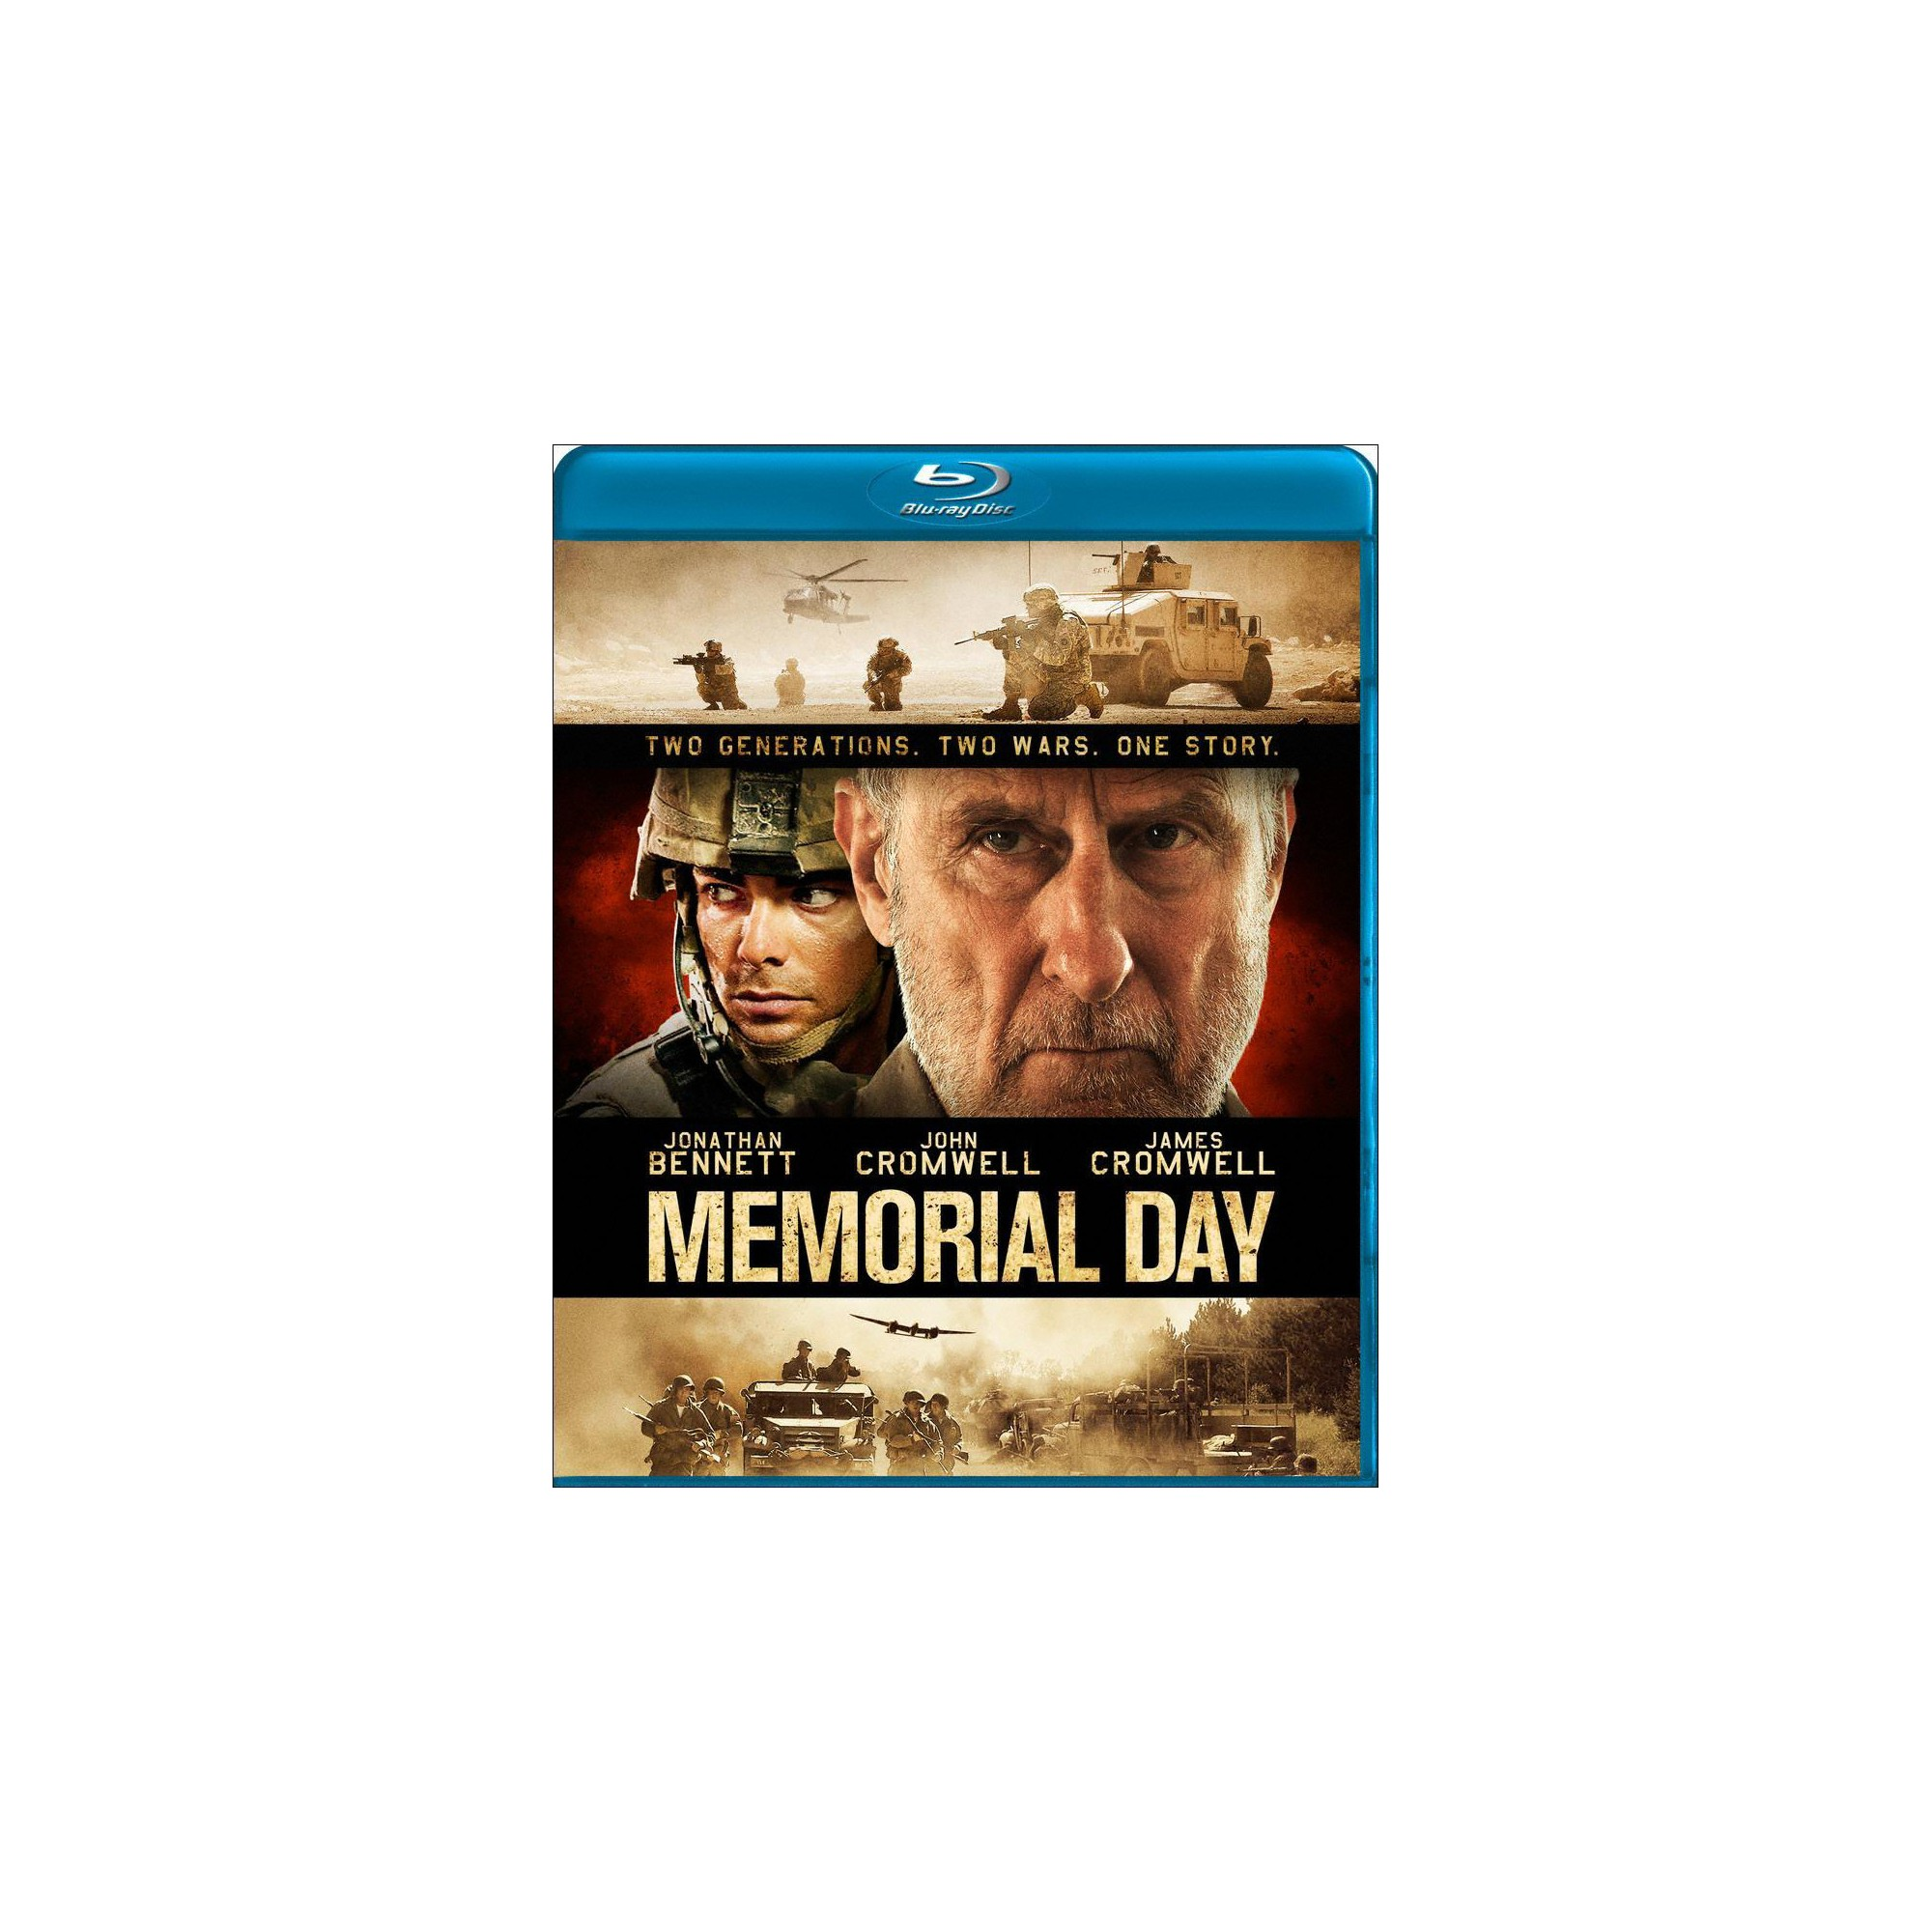 Memorial Day (Blu-ray), movies | Memories, Memorial day ...